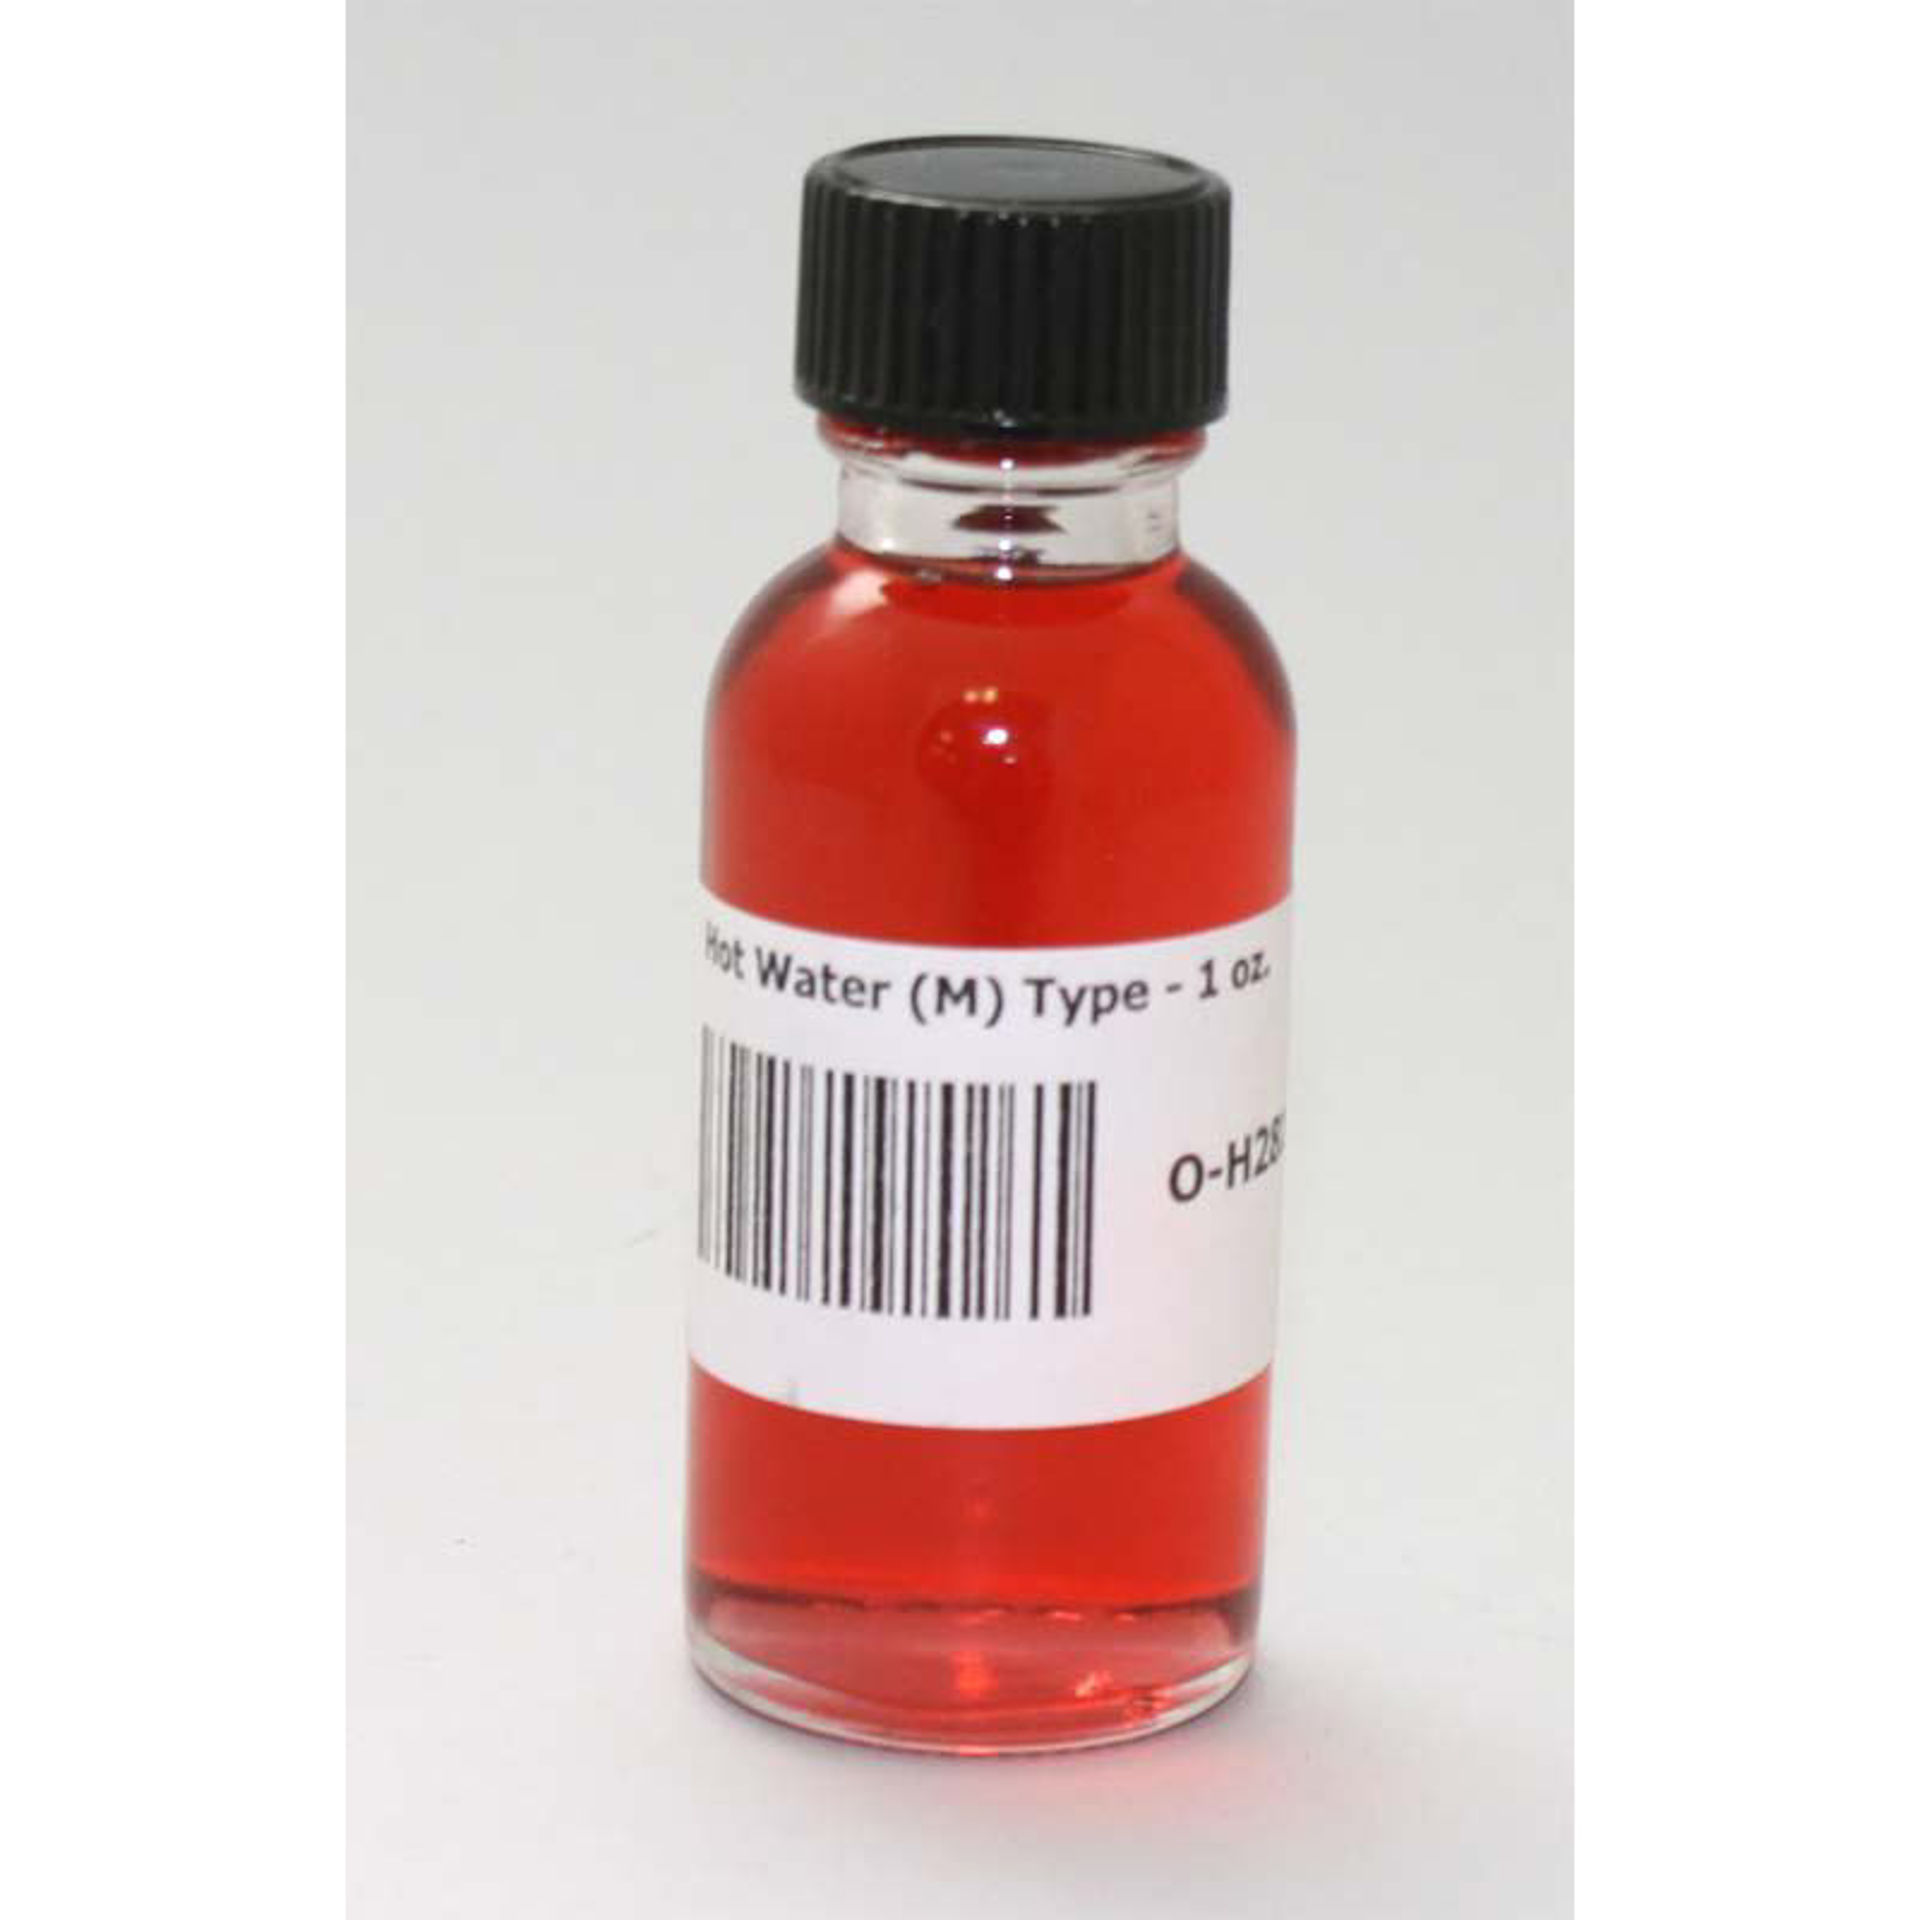 Picture of Hot Water (M) Type - 1 oz.